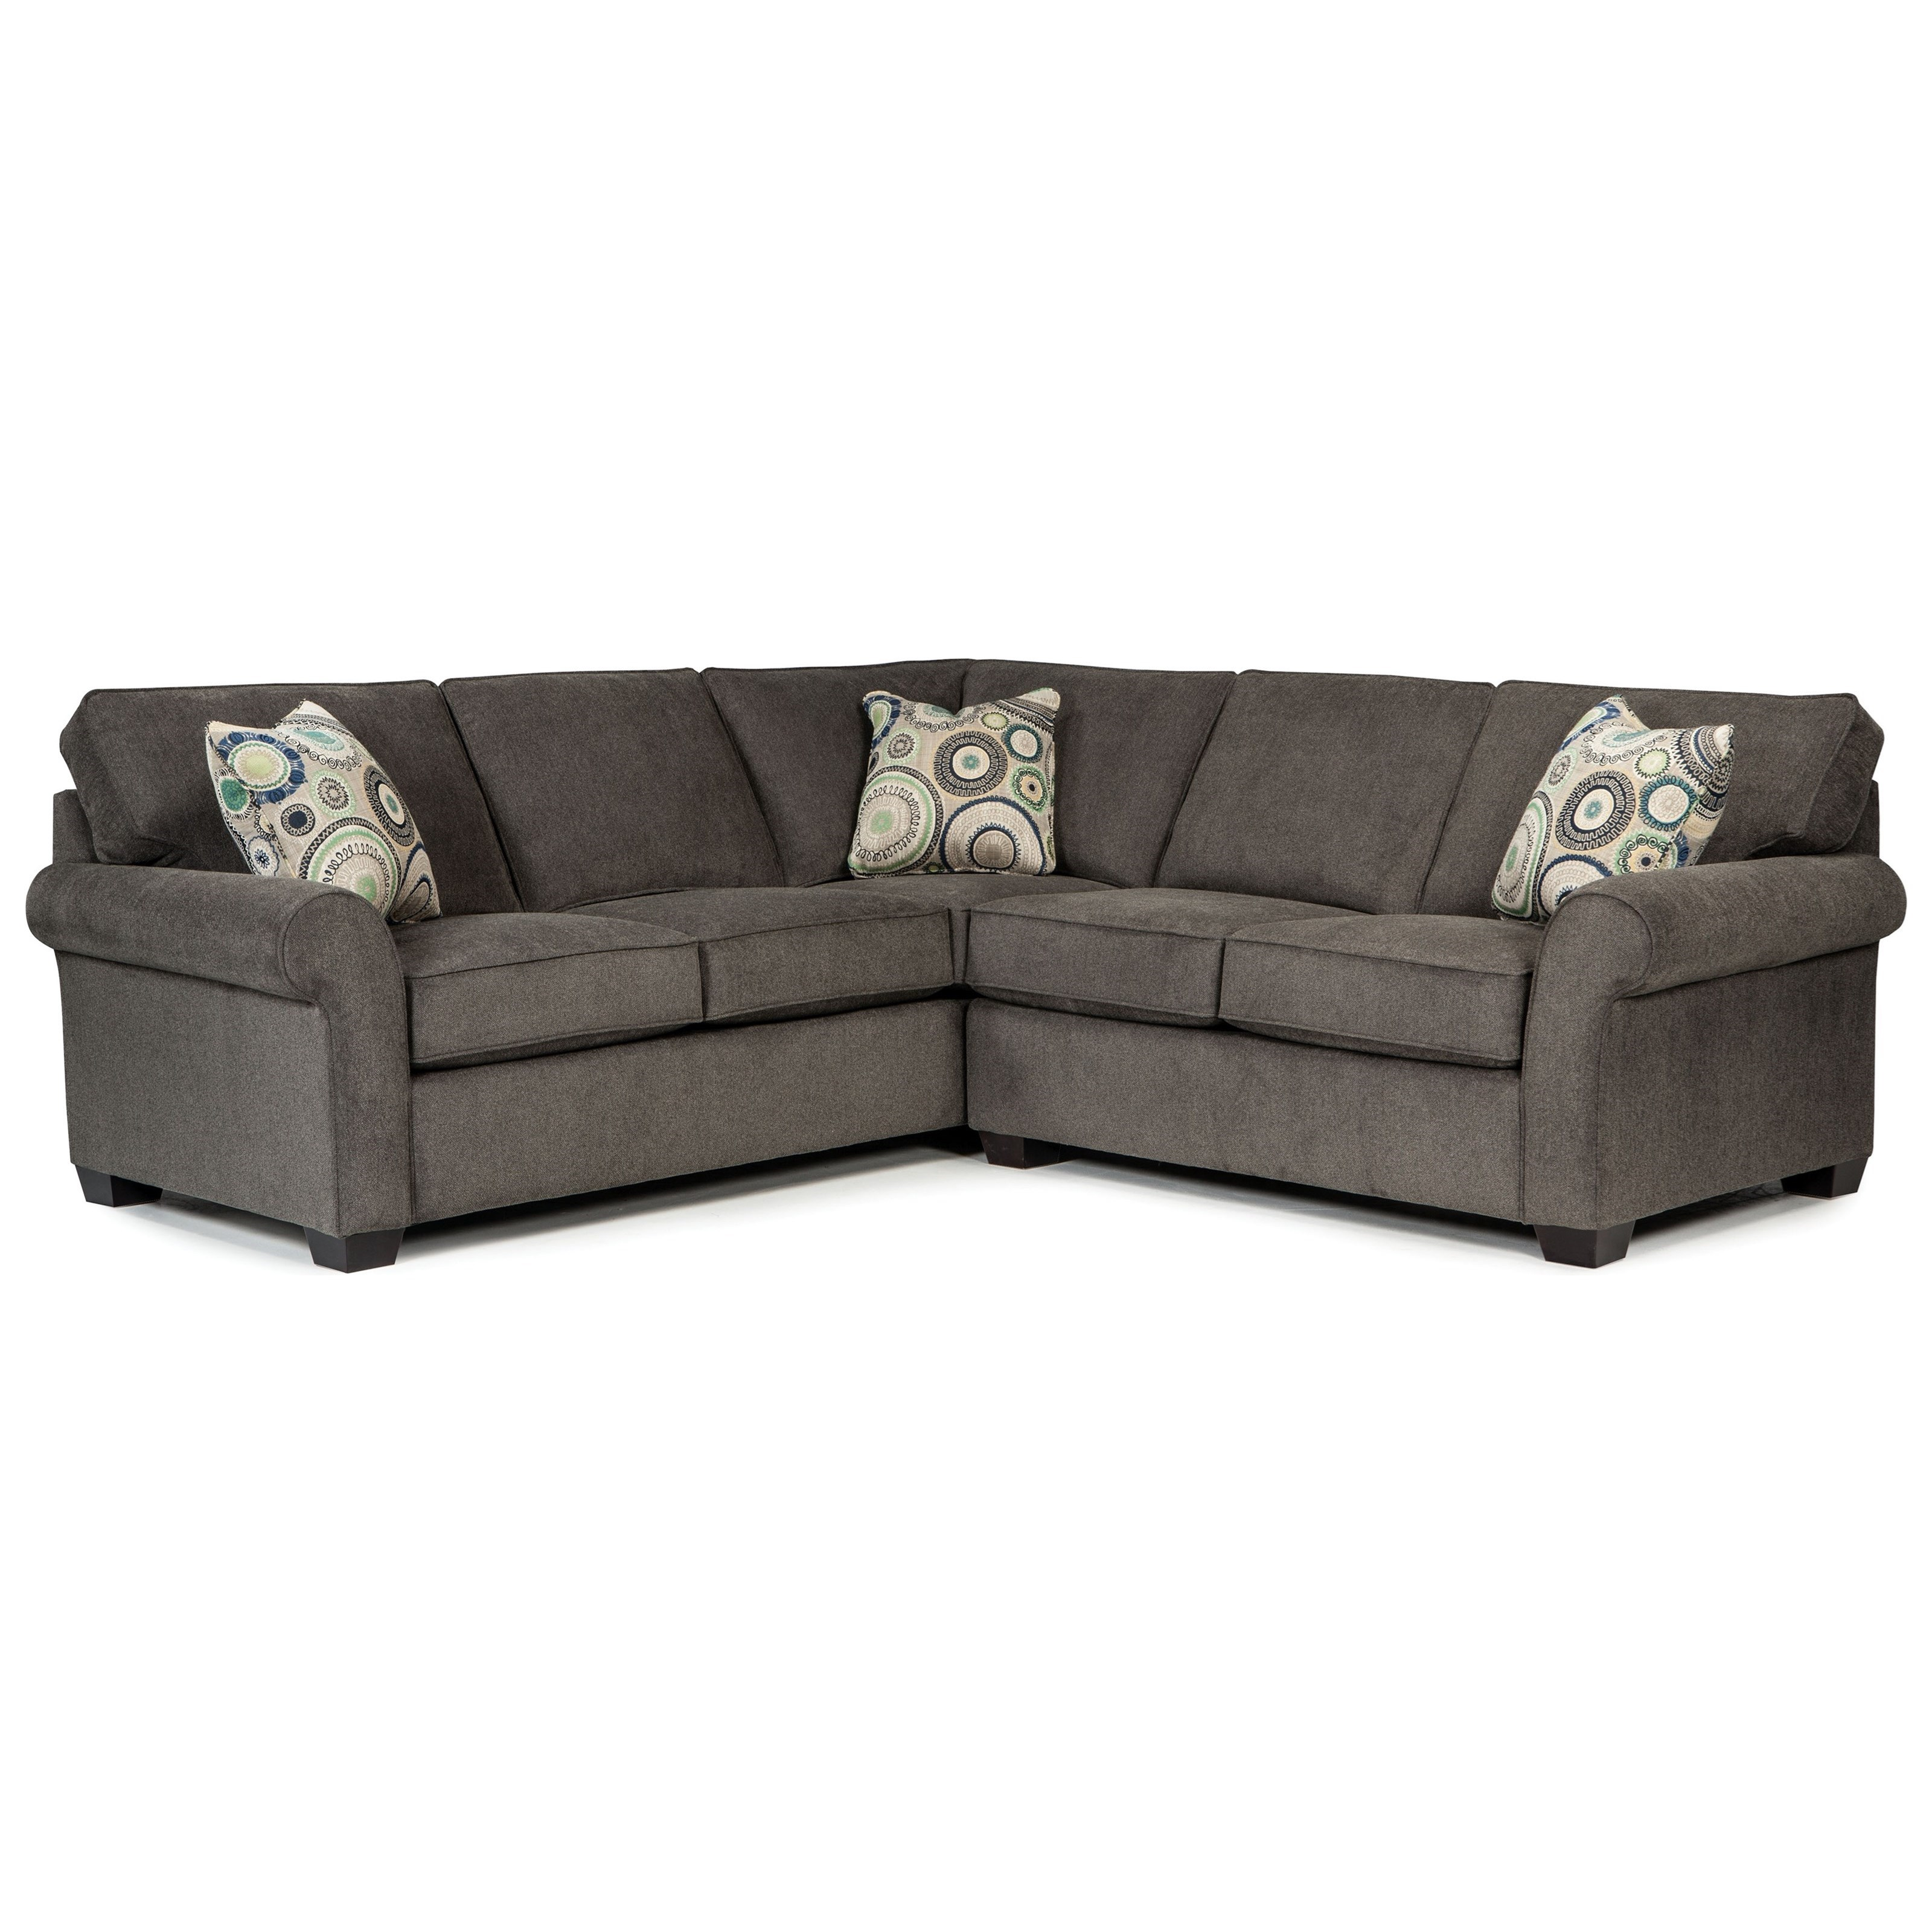 Broyhill Furniture Ethan Two-piece sectional... AS SHOWN ONLY!! - Item Number: 6627-1+4-8957-96